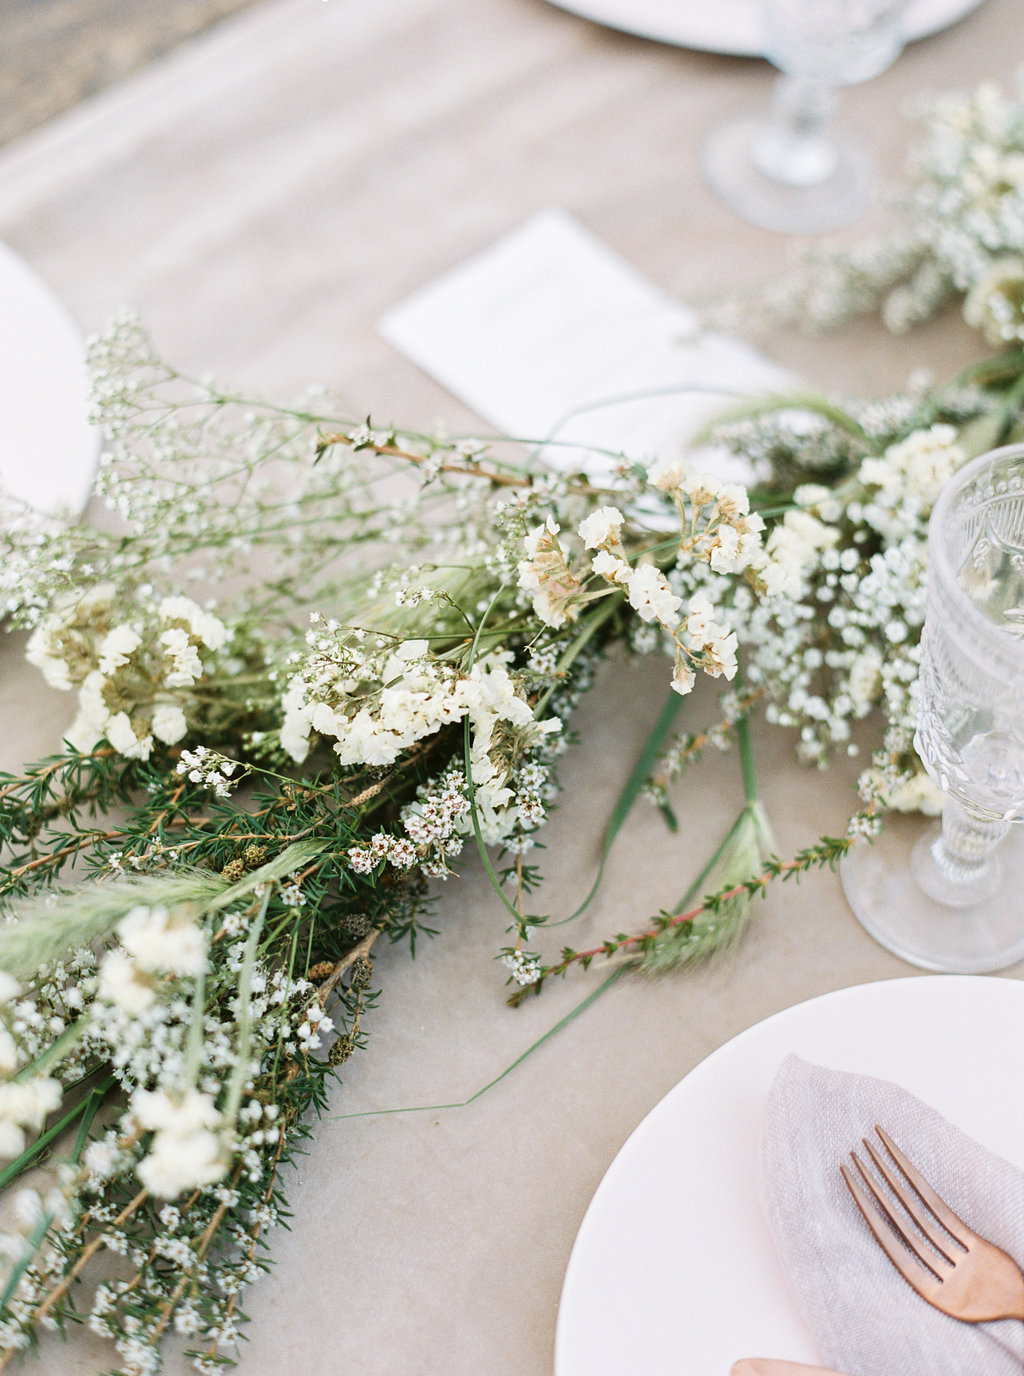 wedding tablescapes - photo by Be Light Photography http://ruffledblog.com/coastal-oregon-inspiration-with-a-show-stopping-wedding-gown